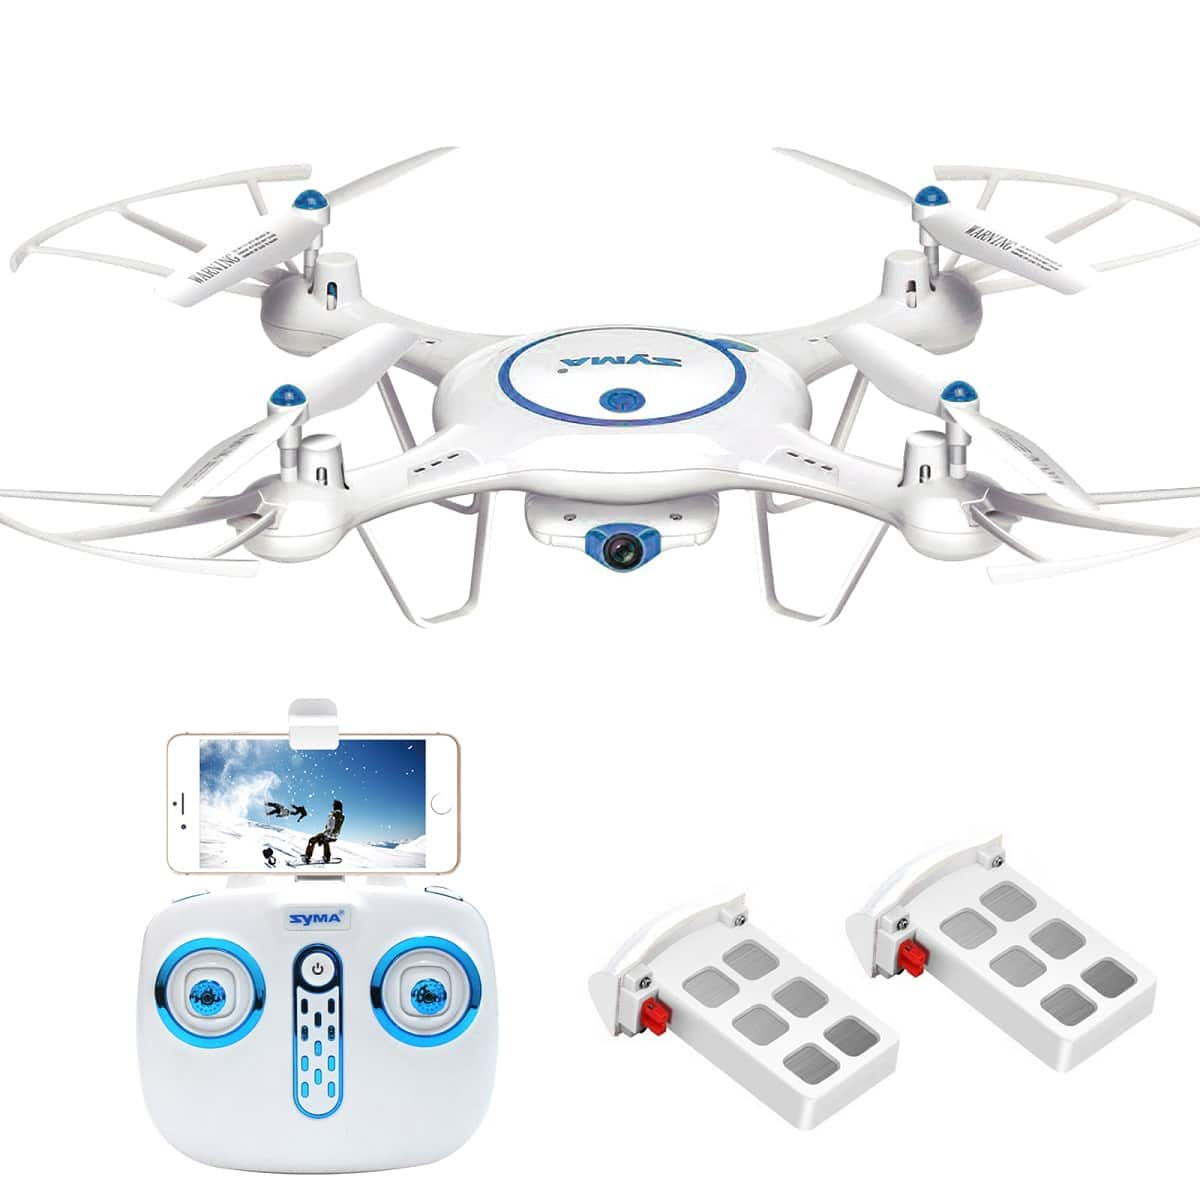 Syma X5UW 2.4Ghz Wifi FPV RC Drone Quadcopter with 720P HD Camera & Altitude Hold Function Bonus Battery Included - $49.54 + Free Shipping